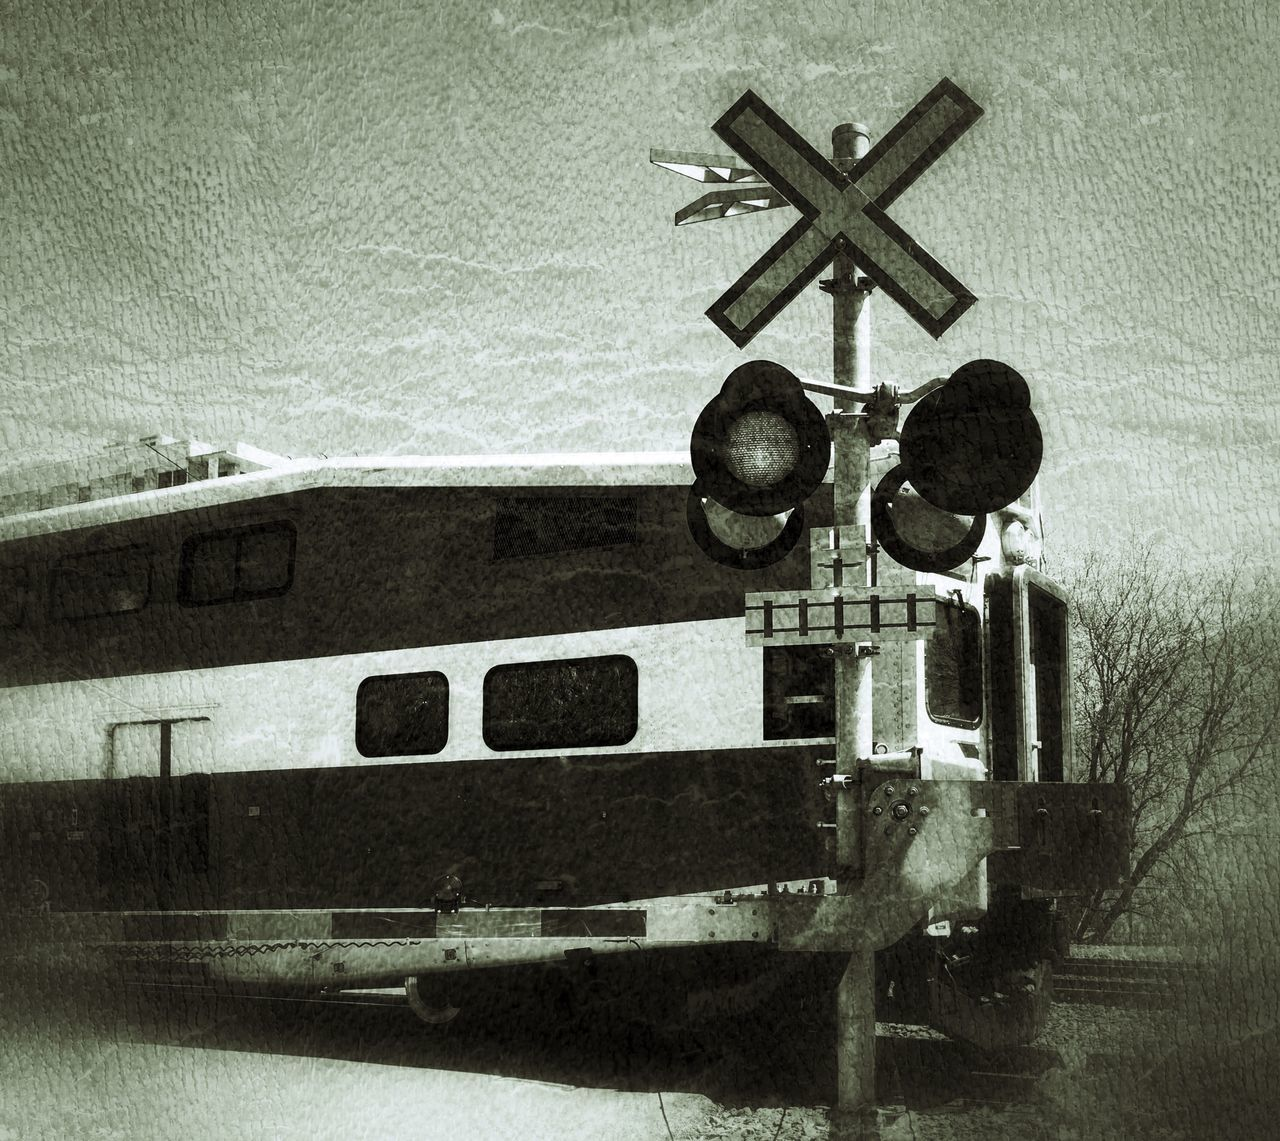 transportation, no people, day, outdoors, locomotive